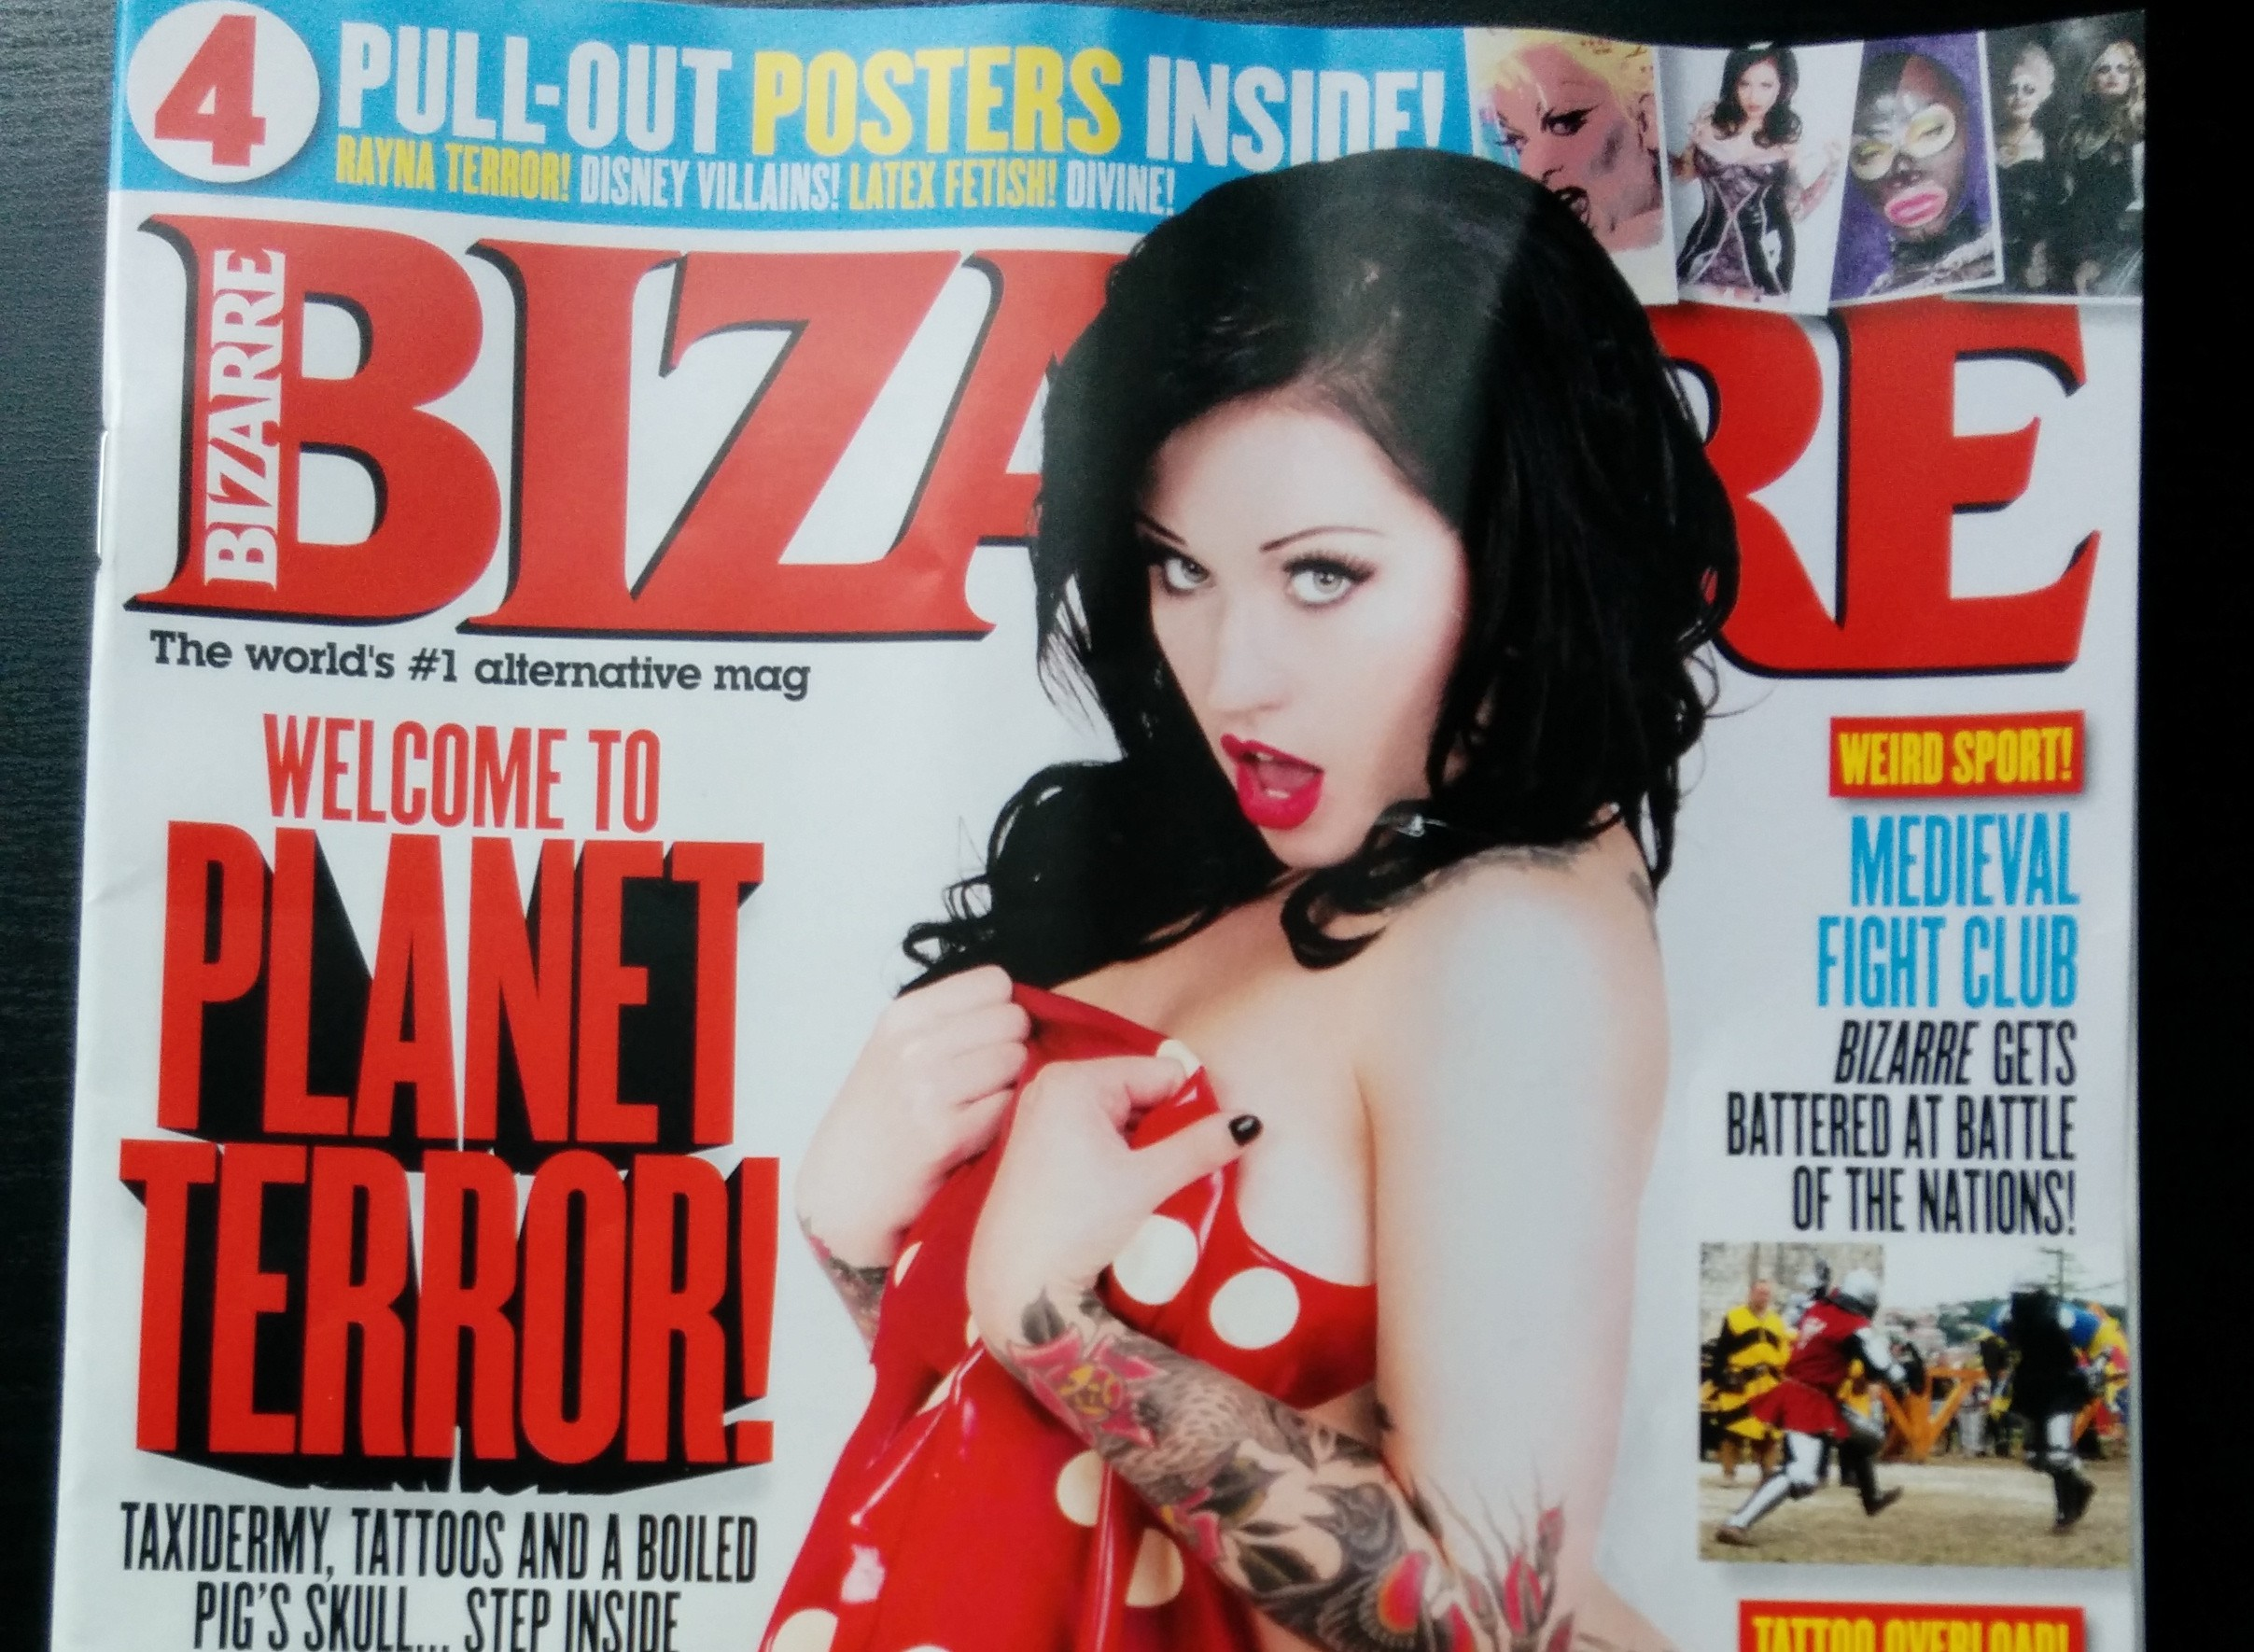 Battle of the Nations World Championship 2014, in Bizarre Magazine December Issue